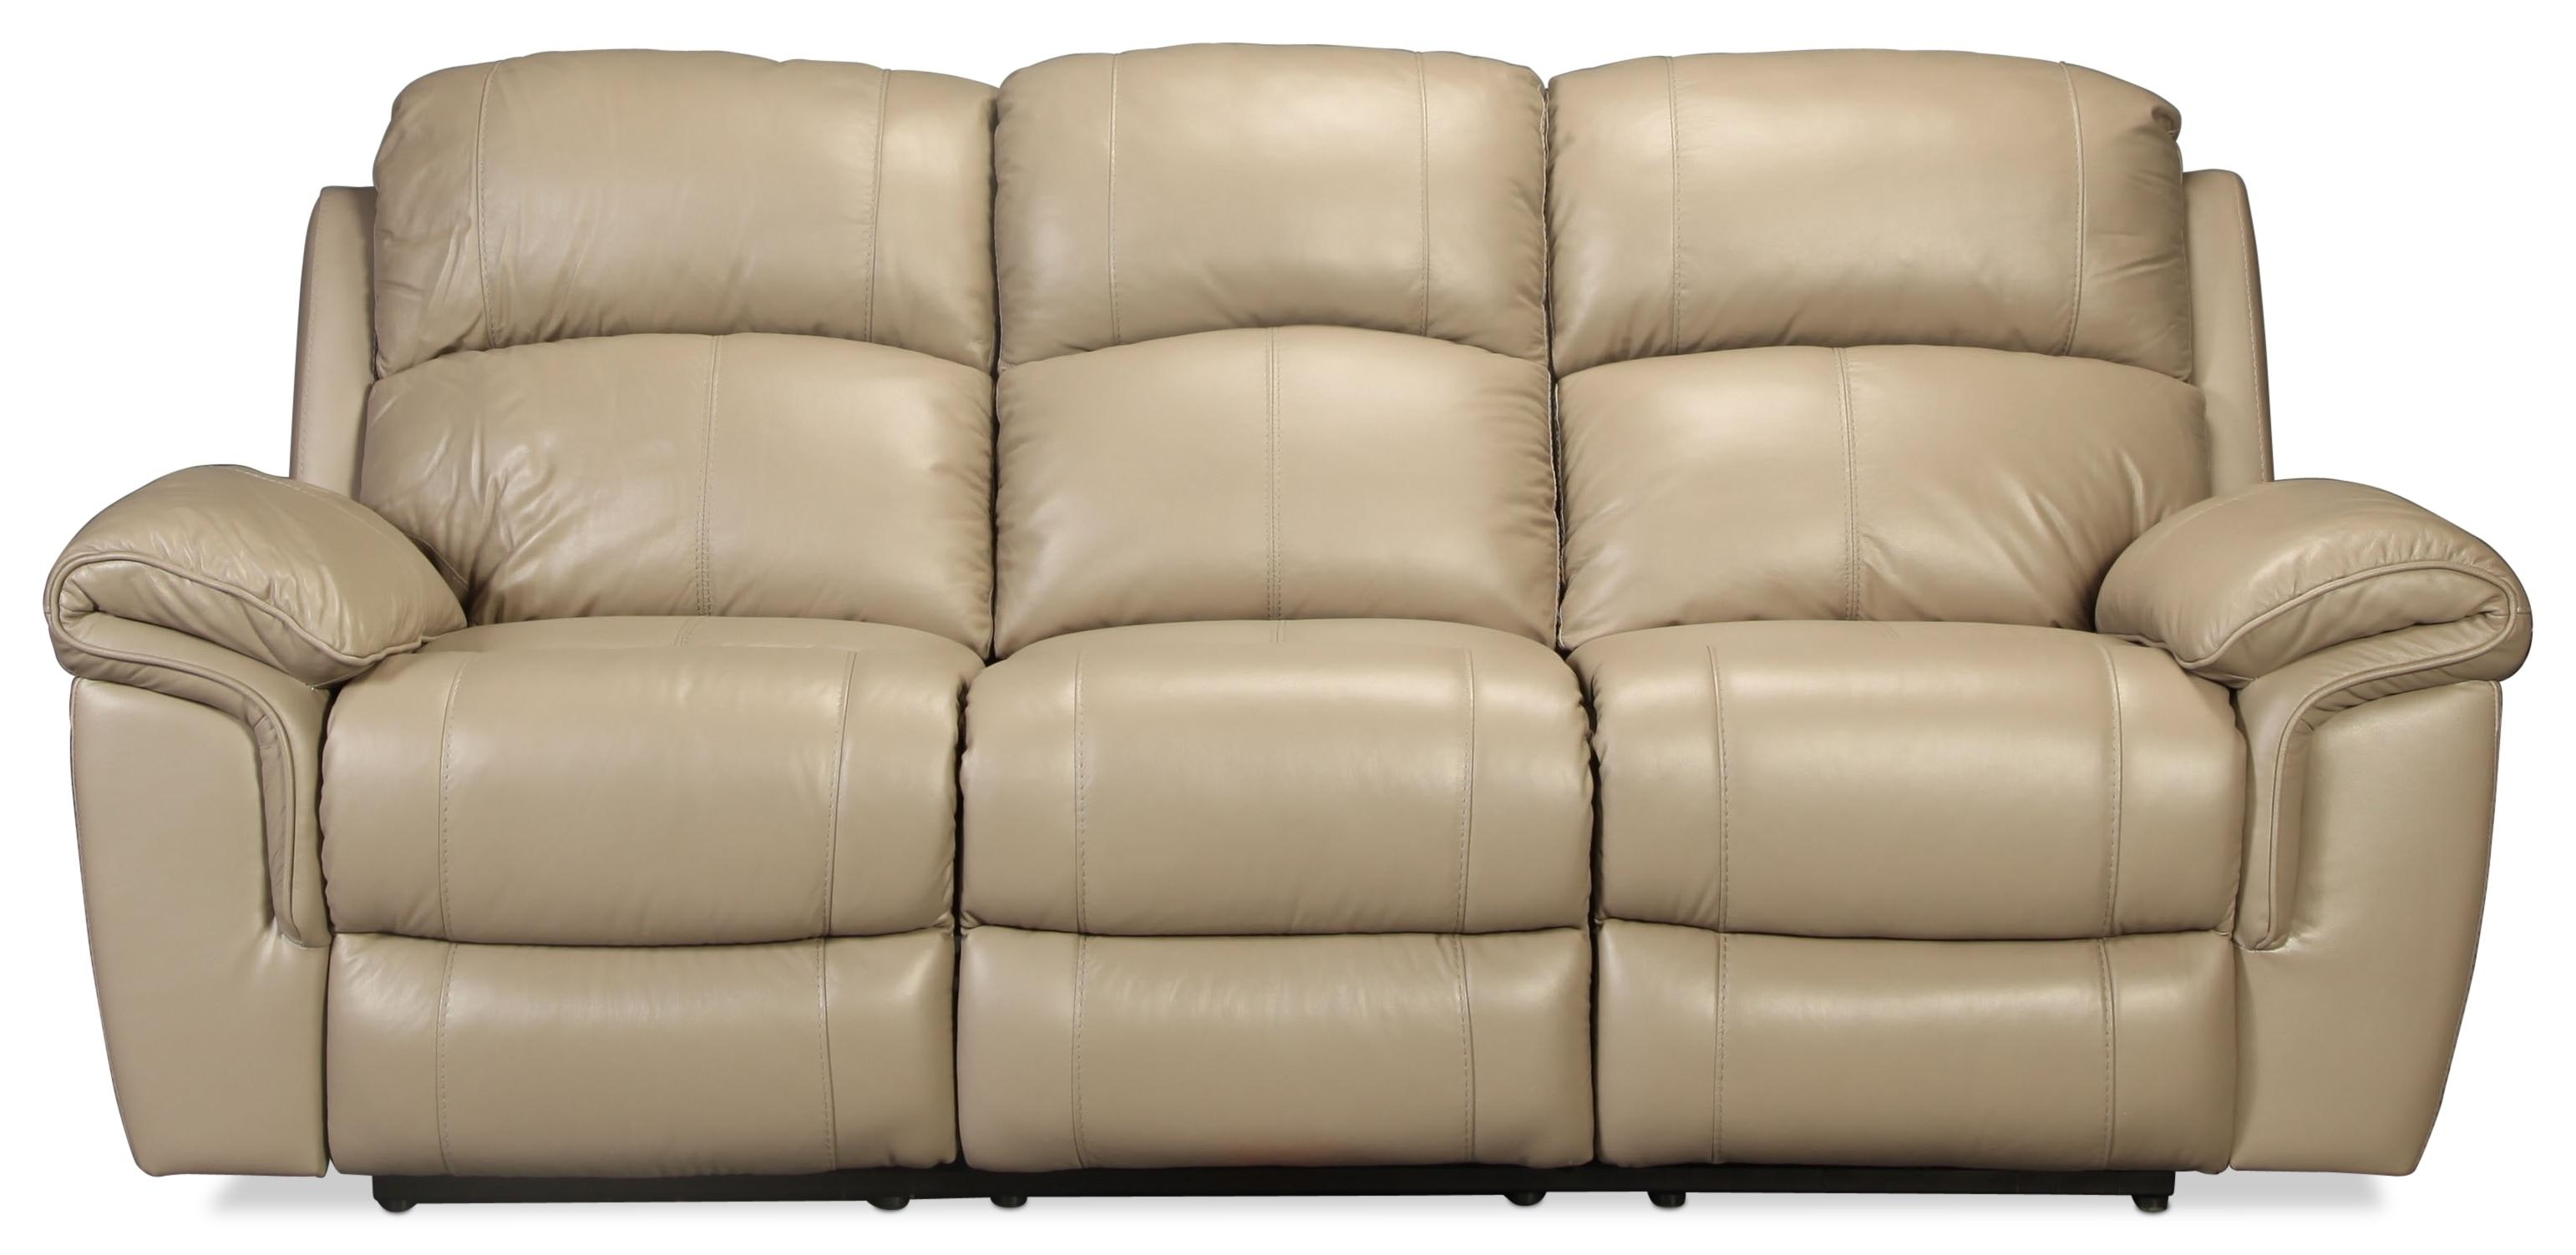 Braxton Power Reclining Sofa | Levin Furniture In Braxton Sofas (View 19 of 20)